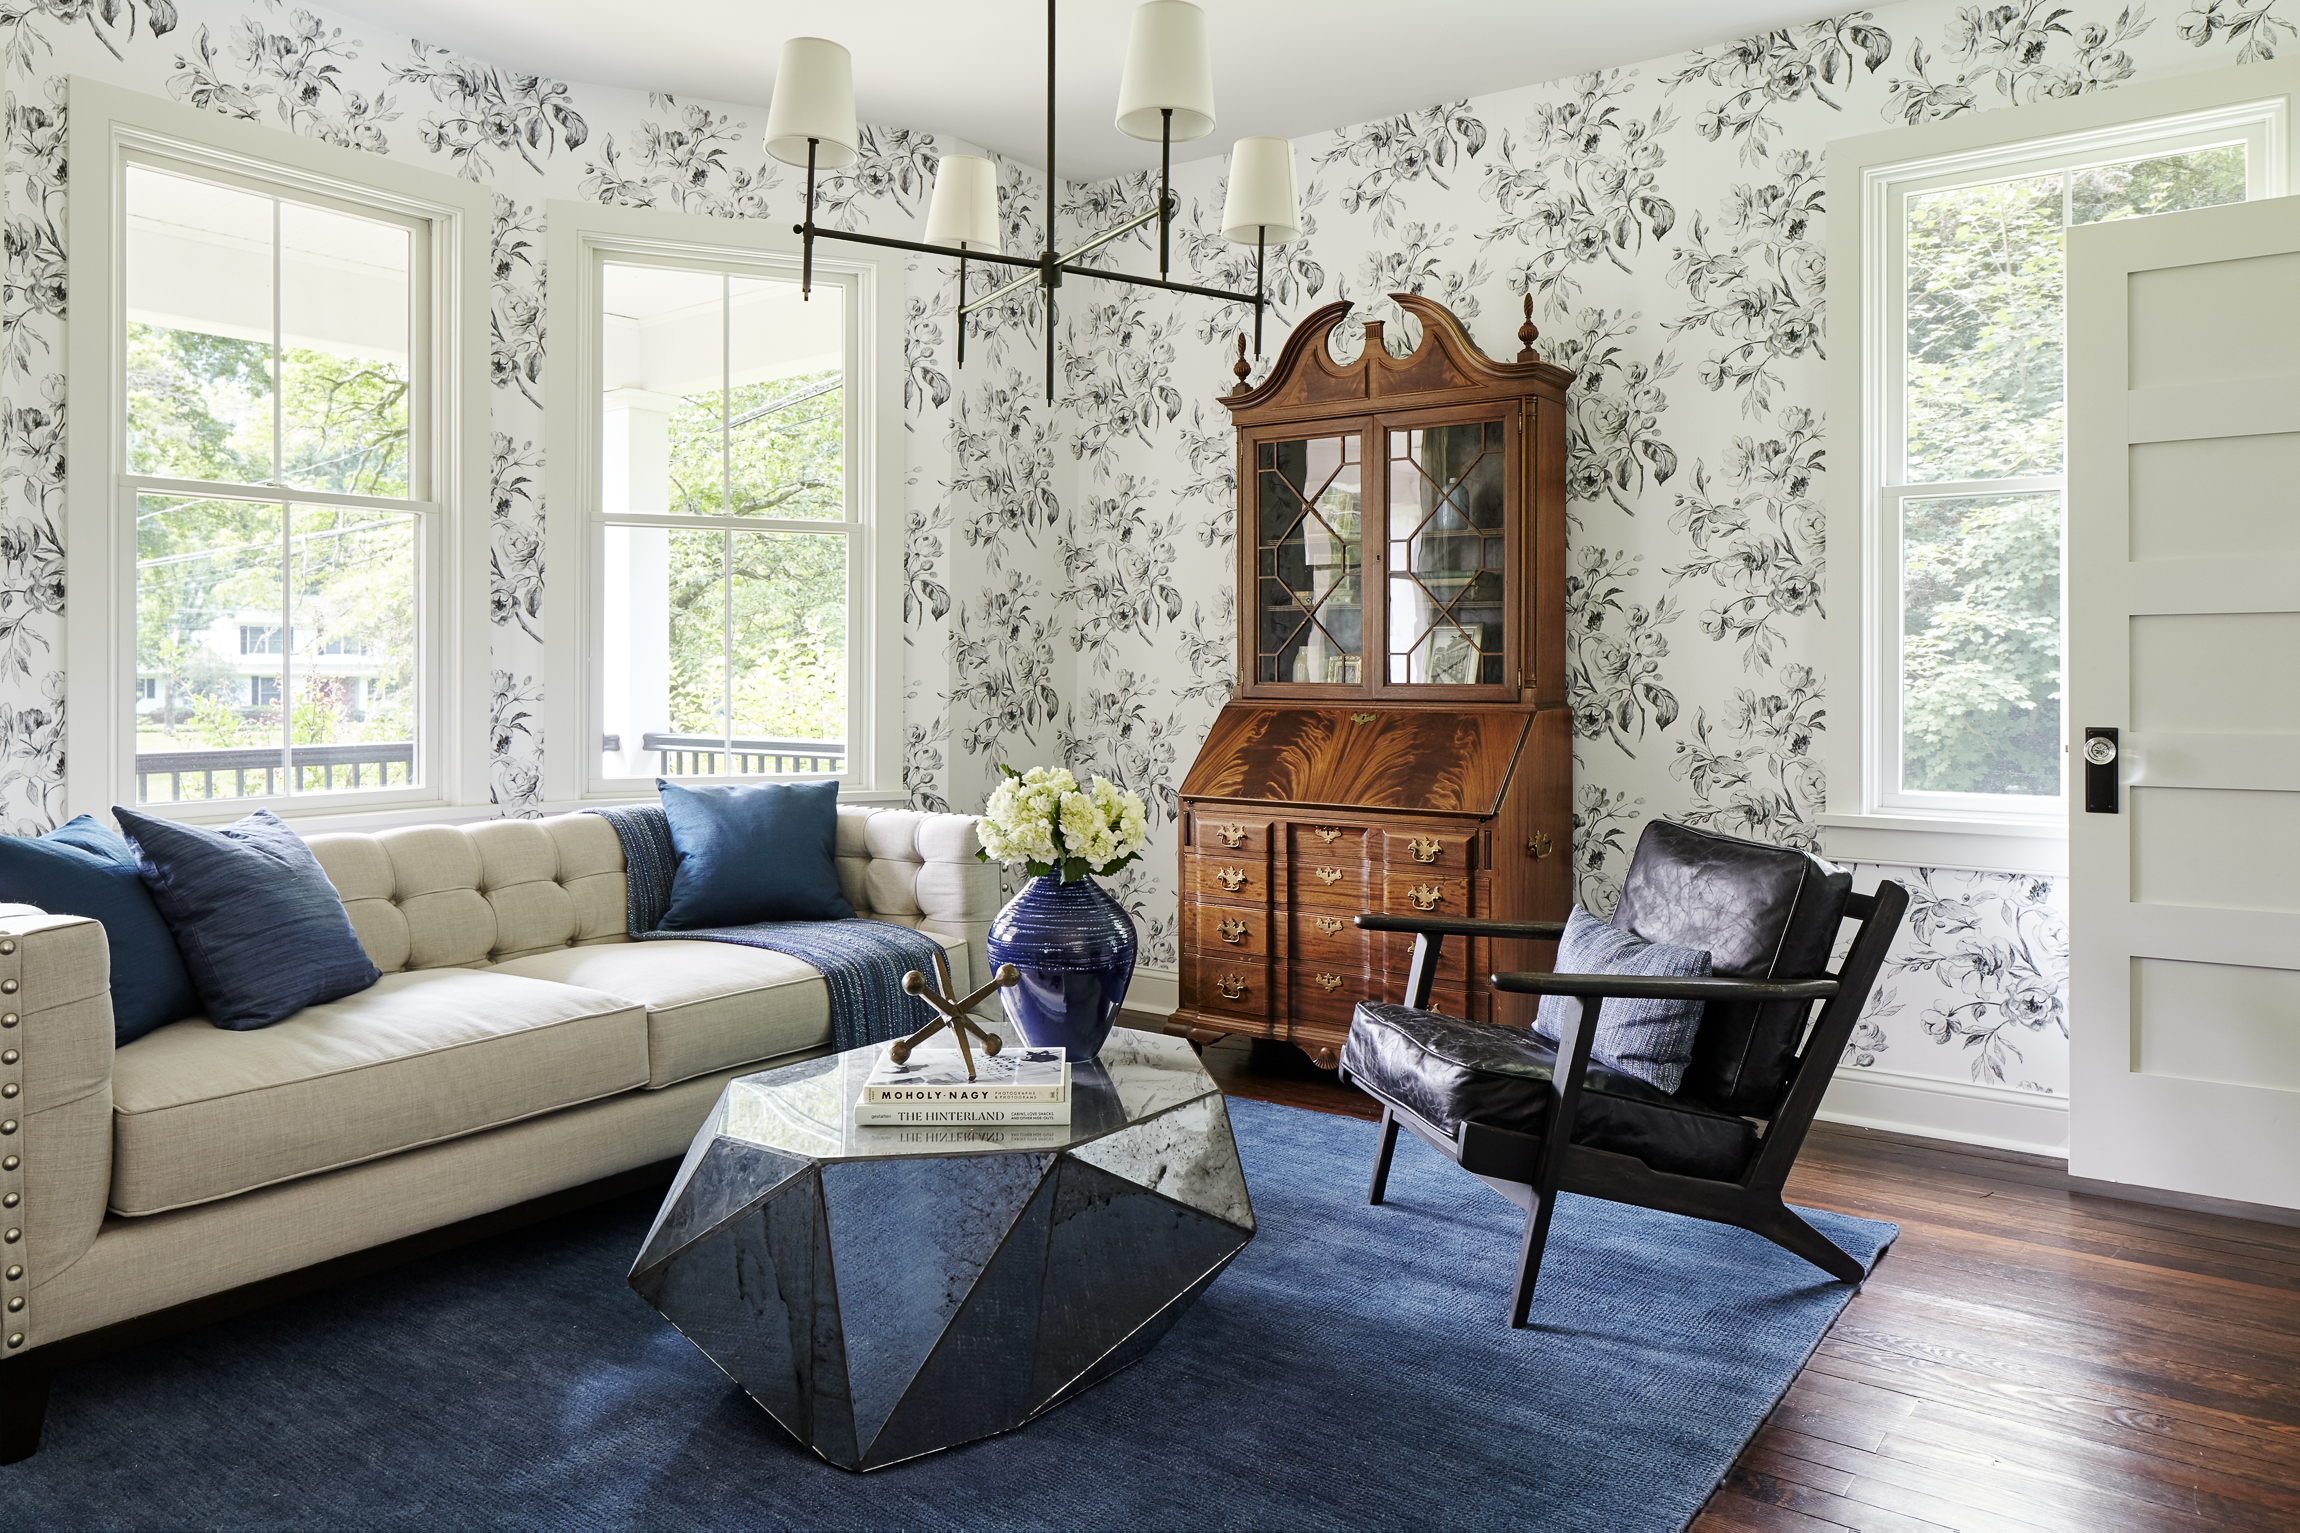 Formal Sitting Room With Patterned Floral Wallcovering And Original Wood Flooring Wallpaper Living Room Unique Living Room Wallpaper Living Room